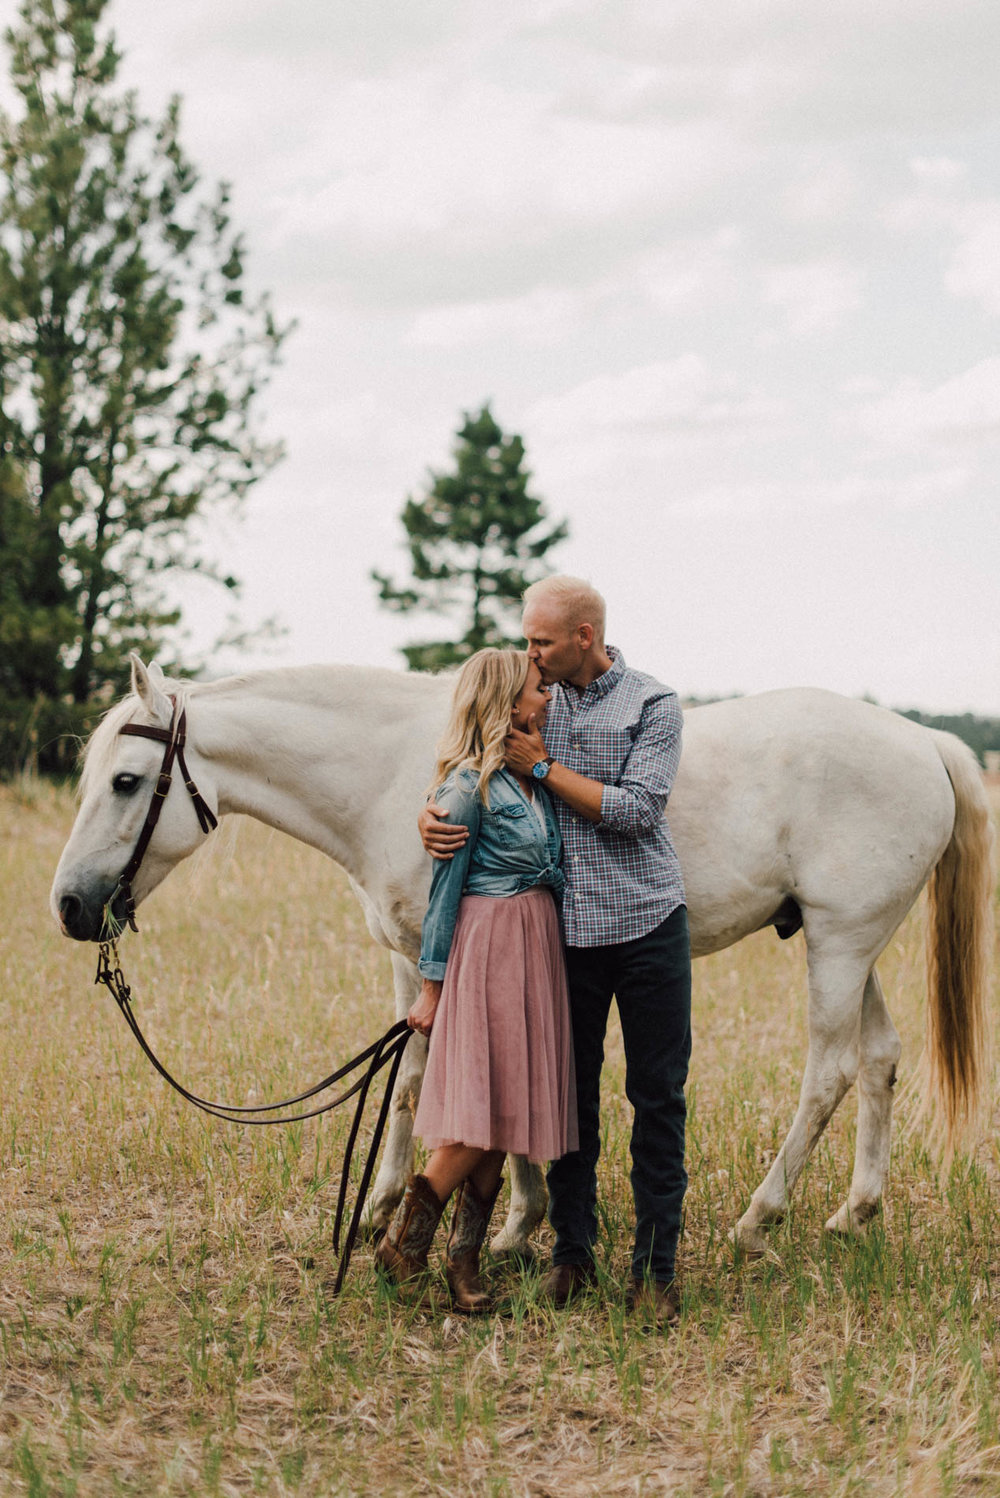 Adventurous-Wedding-Photography-Adventurous-Wedding-Photograph-Adventure-Elopement-Photographer-Adventurous-Elopement-Photograph-Adventurous-Elopement-Photographer-Adventurous-Destination-Elopement-Photographer-Destination-Elopement-Photography-Destination-Elopement-horseback-riding-engagement-session